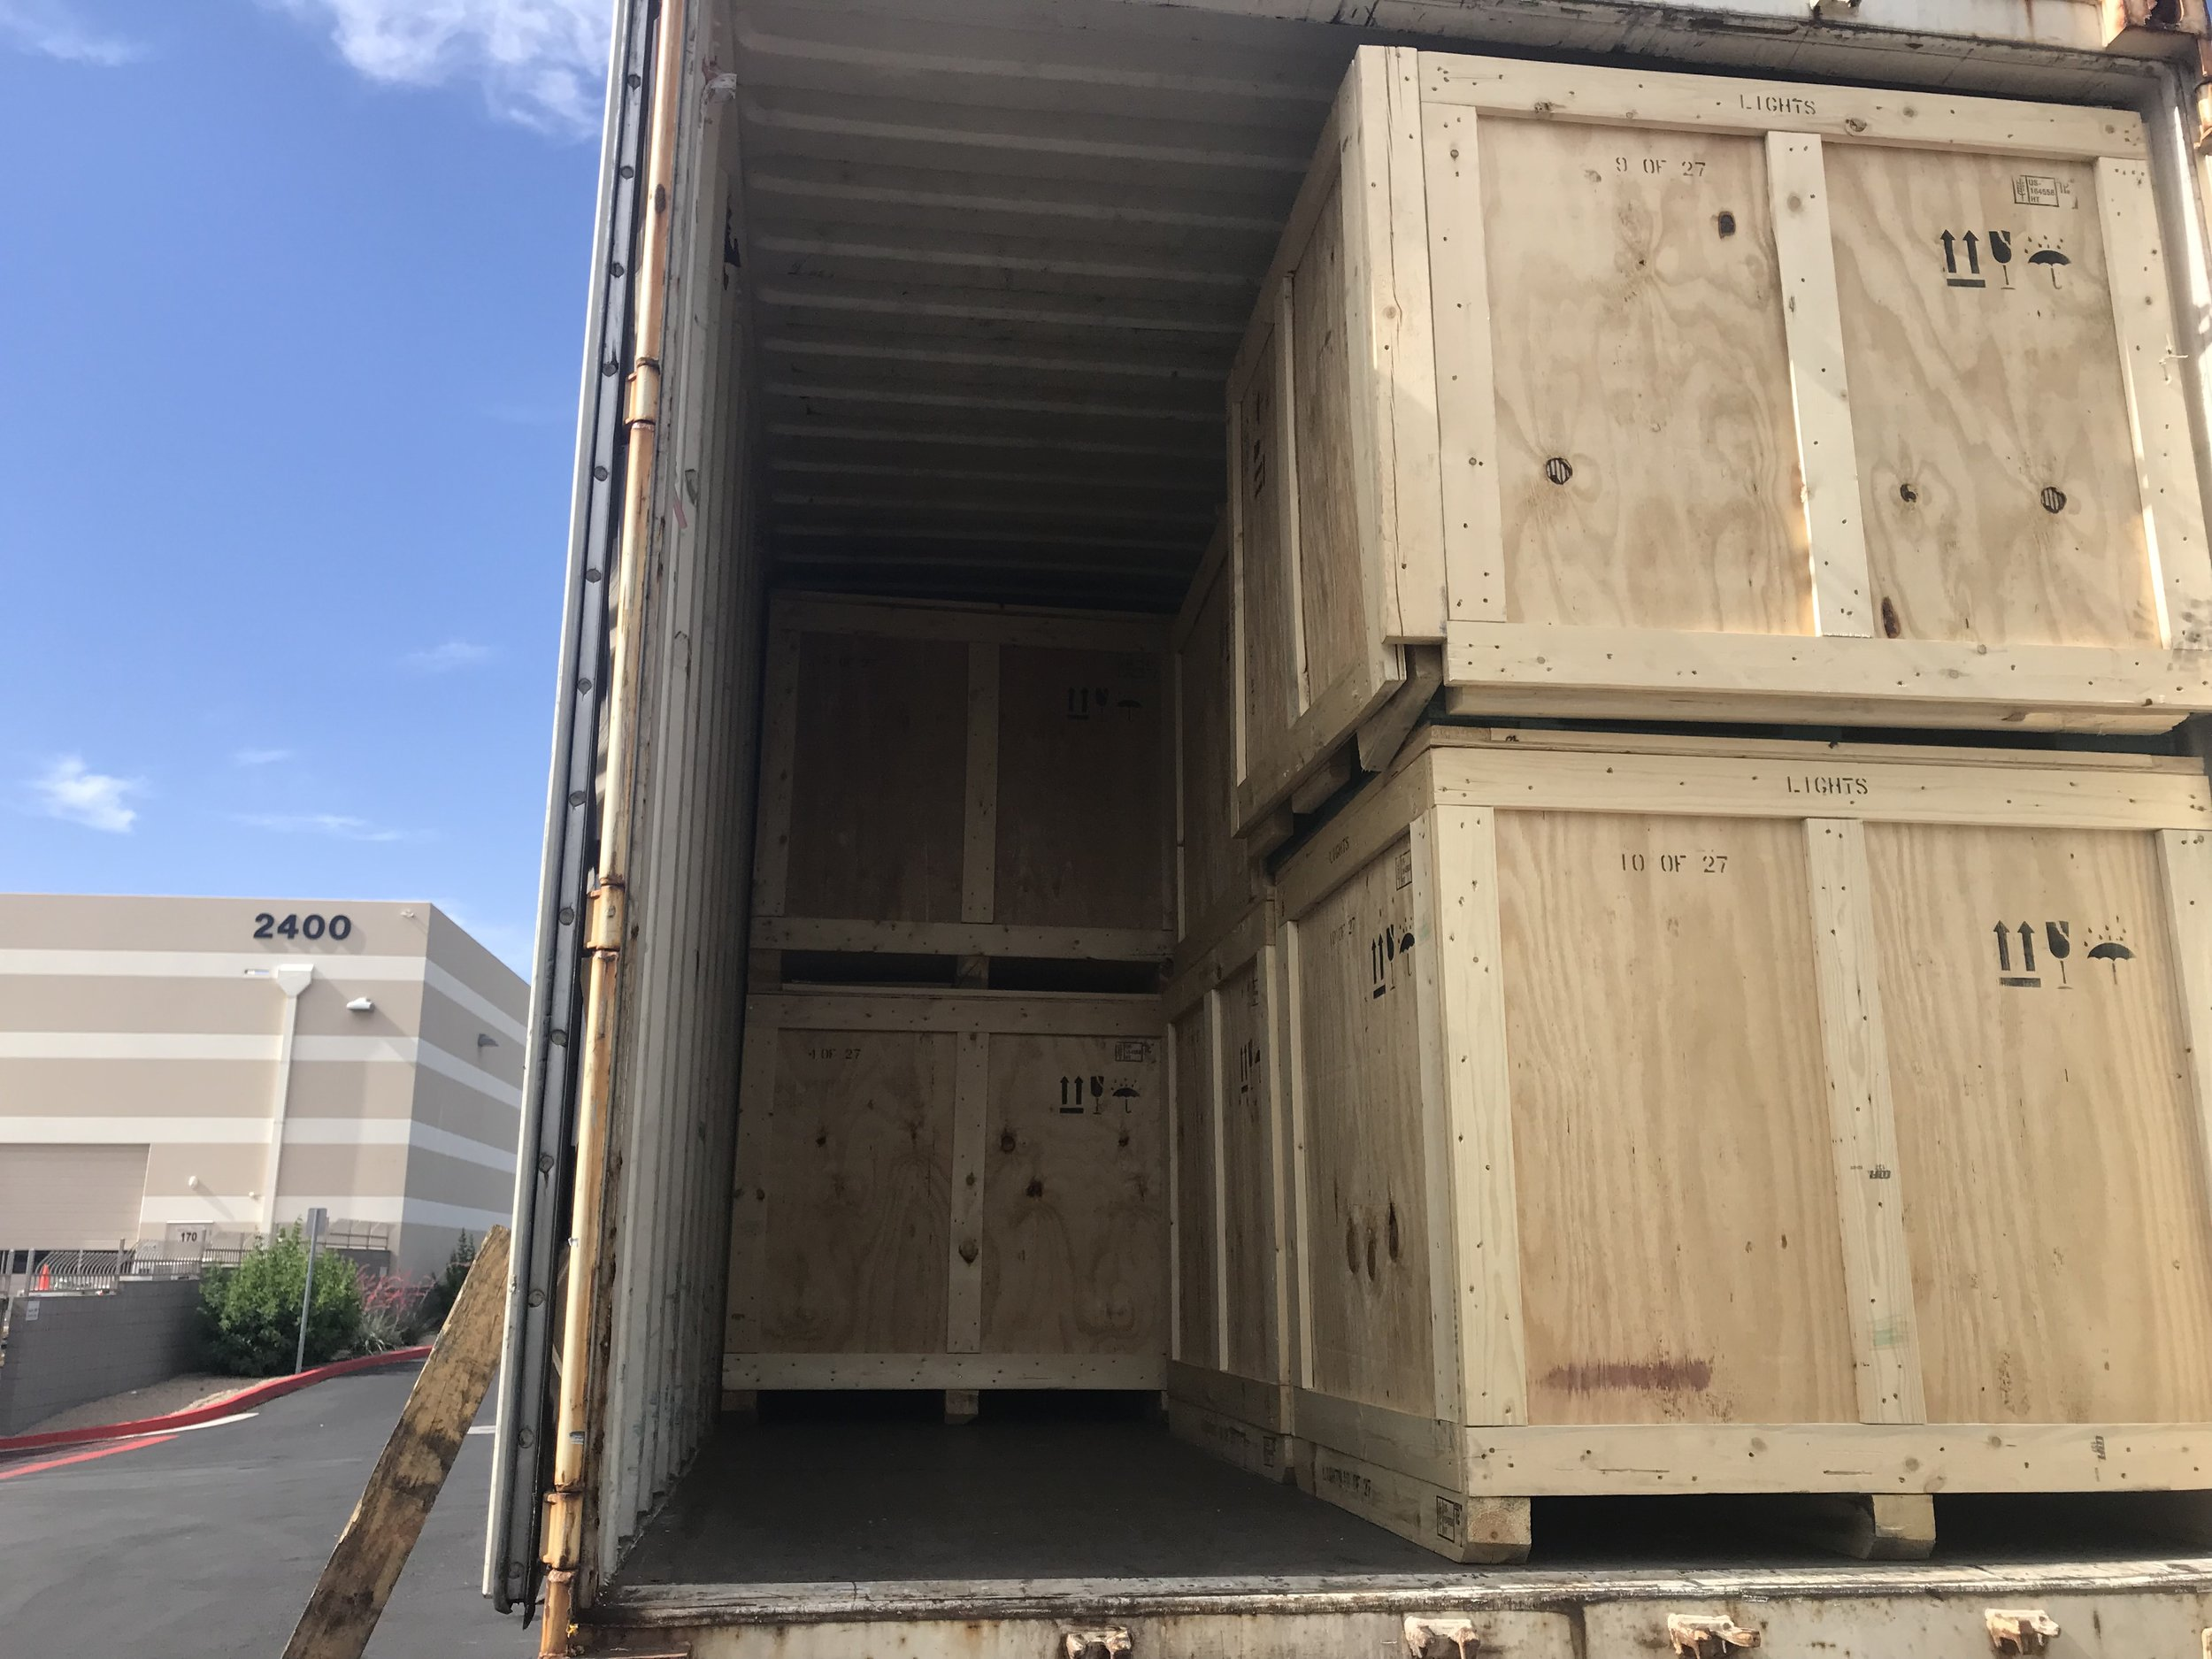 With minimal room to space, the boxes containing the branch were ready for departure.